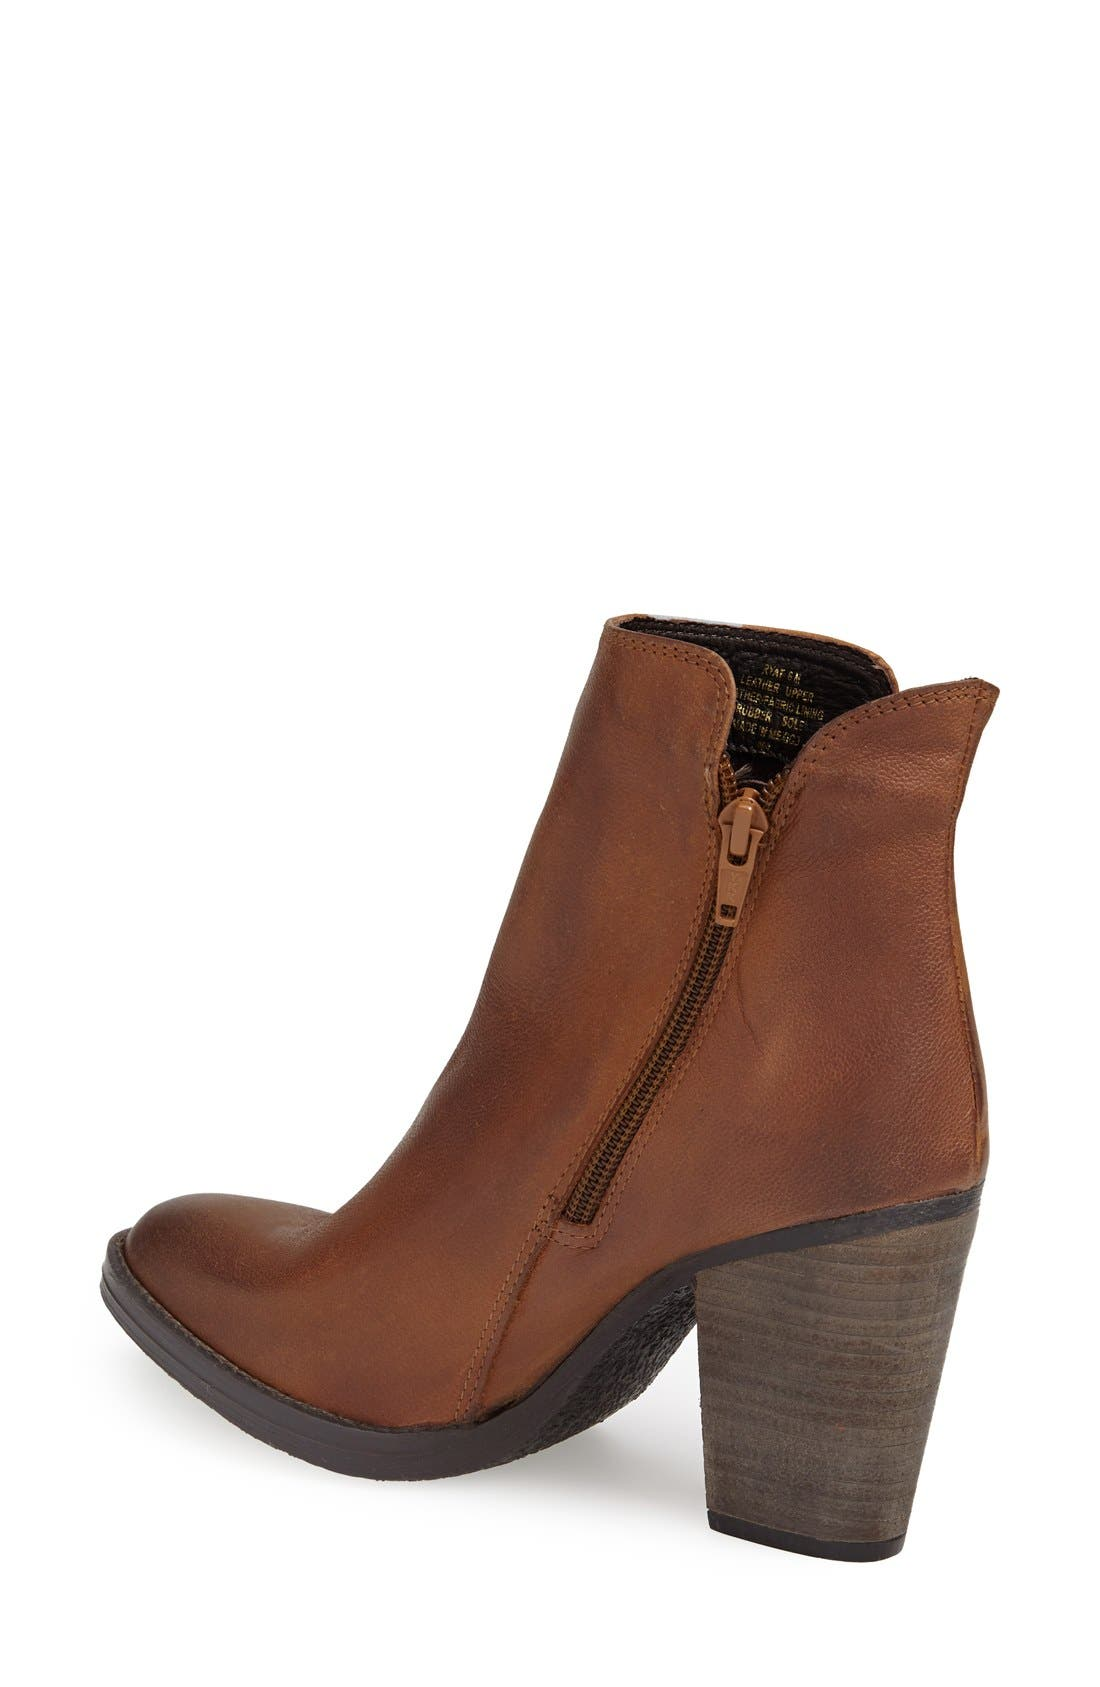 'Ryat' Leather Ankle Bootie,                             Alternate thumbnail 2, color,                             Cognac Leather